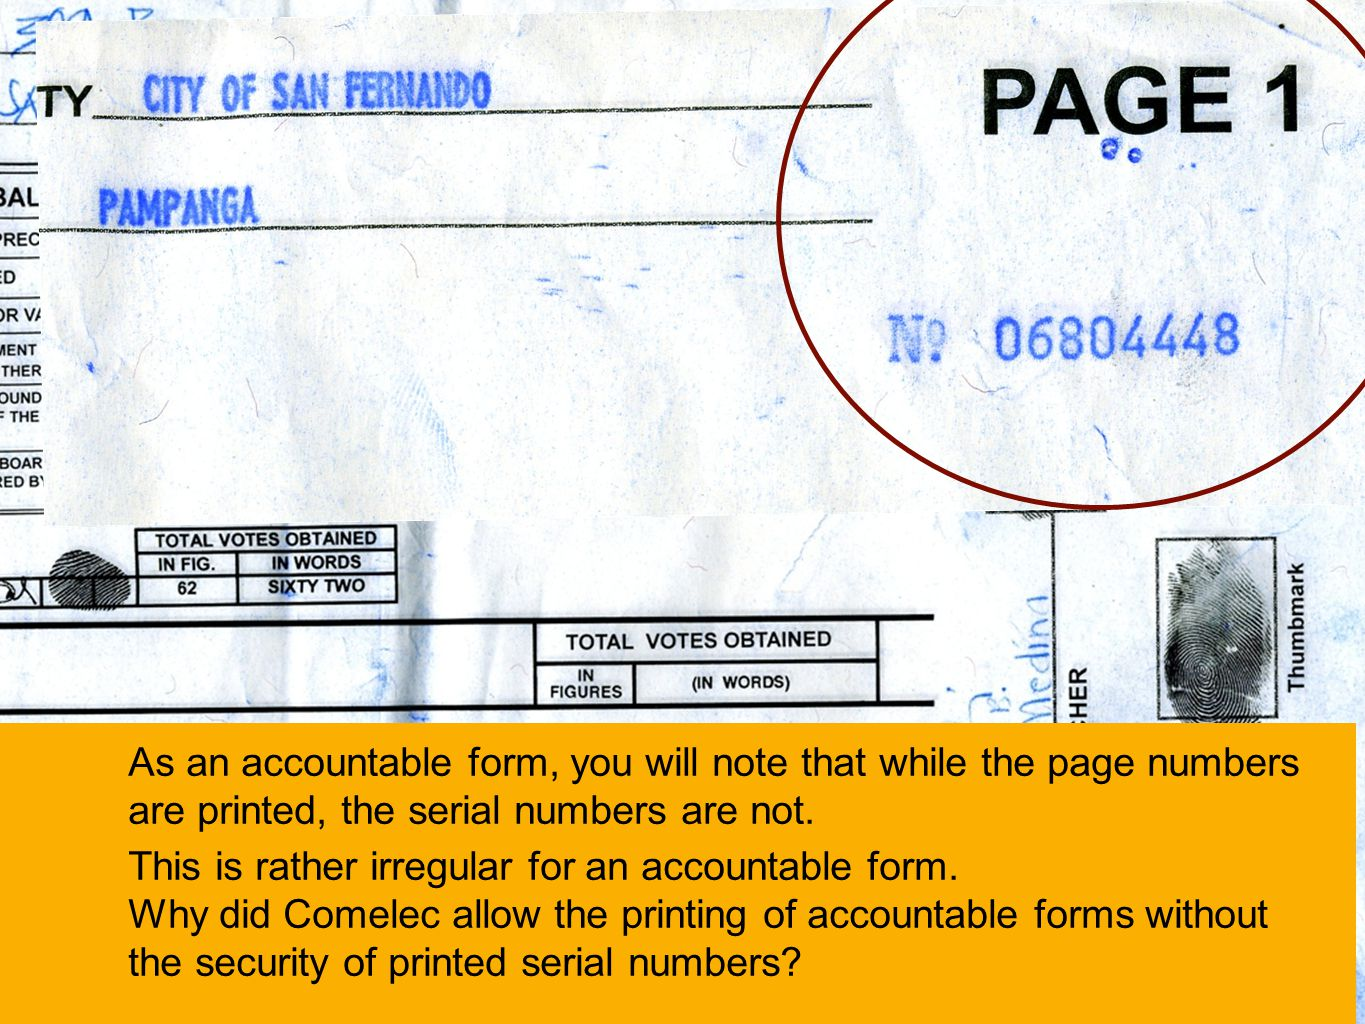 As an accountable form, you will note that while the page numbers are printed, the serial numbers are not.